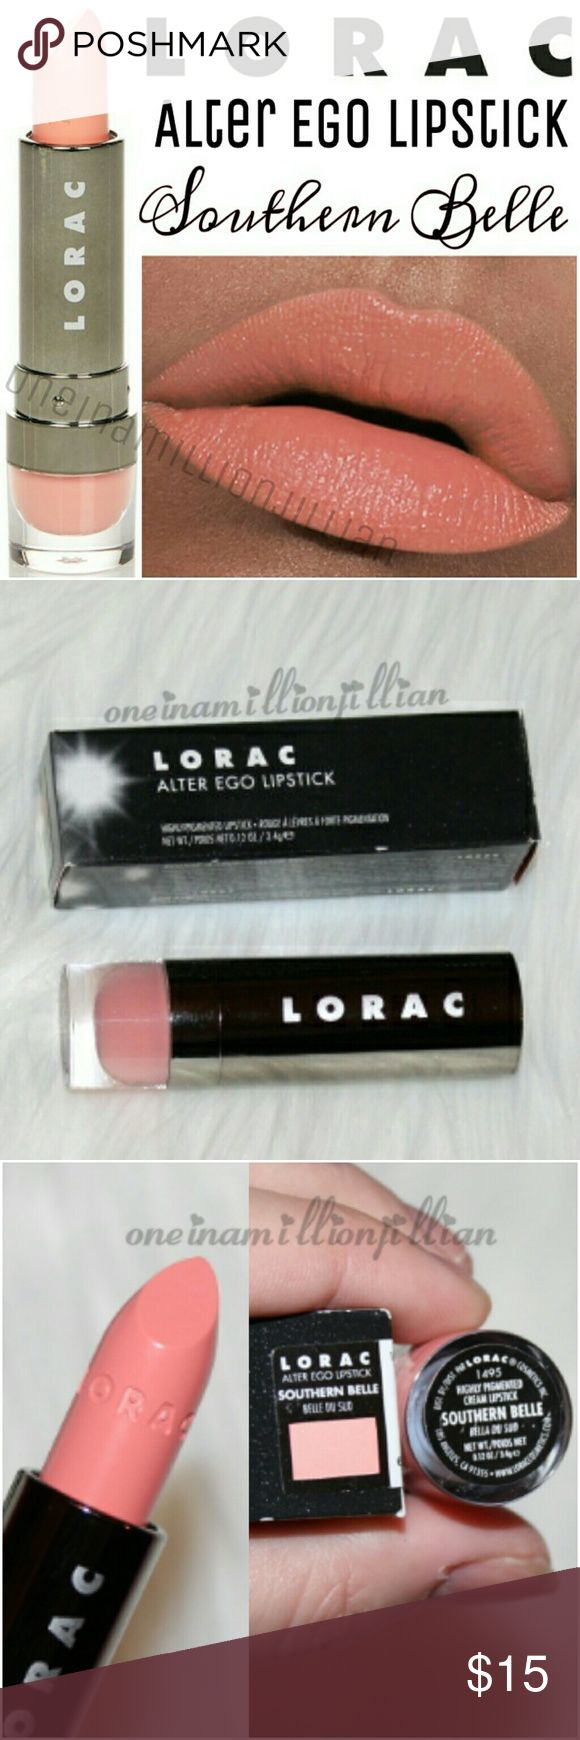 LORAC Alter Ego Lipstick - Southern Belle New in Box - Never Used  Full Sz & Authentic  Color: Southern Belle (light peach)  Instantly transform your look with LORAC Alter Ego Lipstick. This sexy & playful lipstick coats your lips in highly-pigmented color with an opaque, matte finish. Alter Ego Lipstick contains antioxidants such as Acai Berry, Pomegranate, Grape Seed Extract & Vitamins C & E.  Whether you wish to be a Free Spirit, a Supermodel or a Sex Kitten (even if just for a night)…